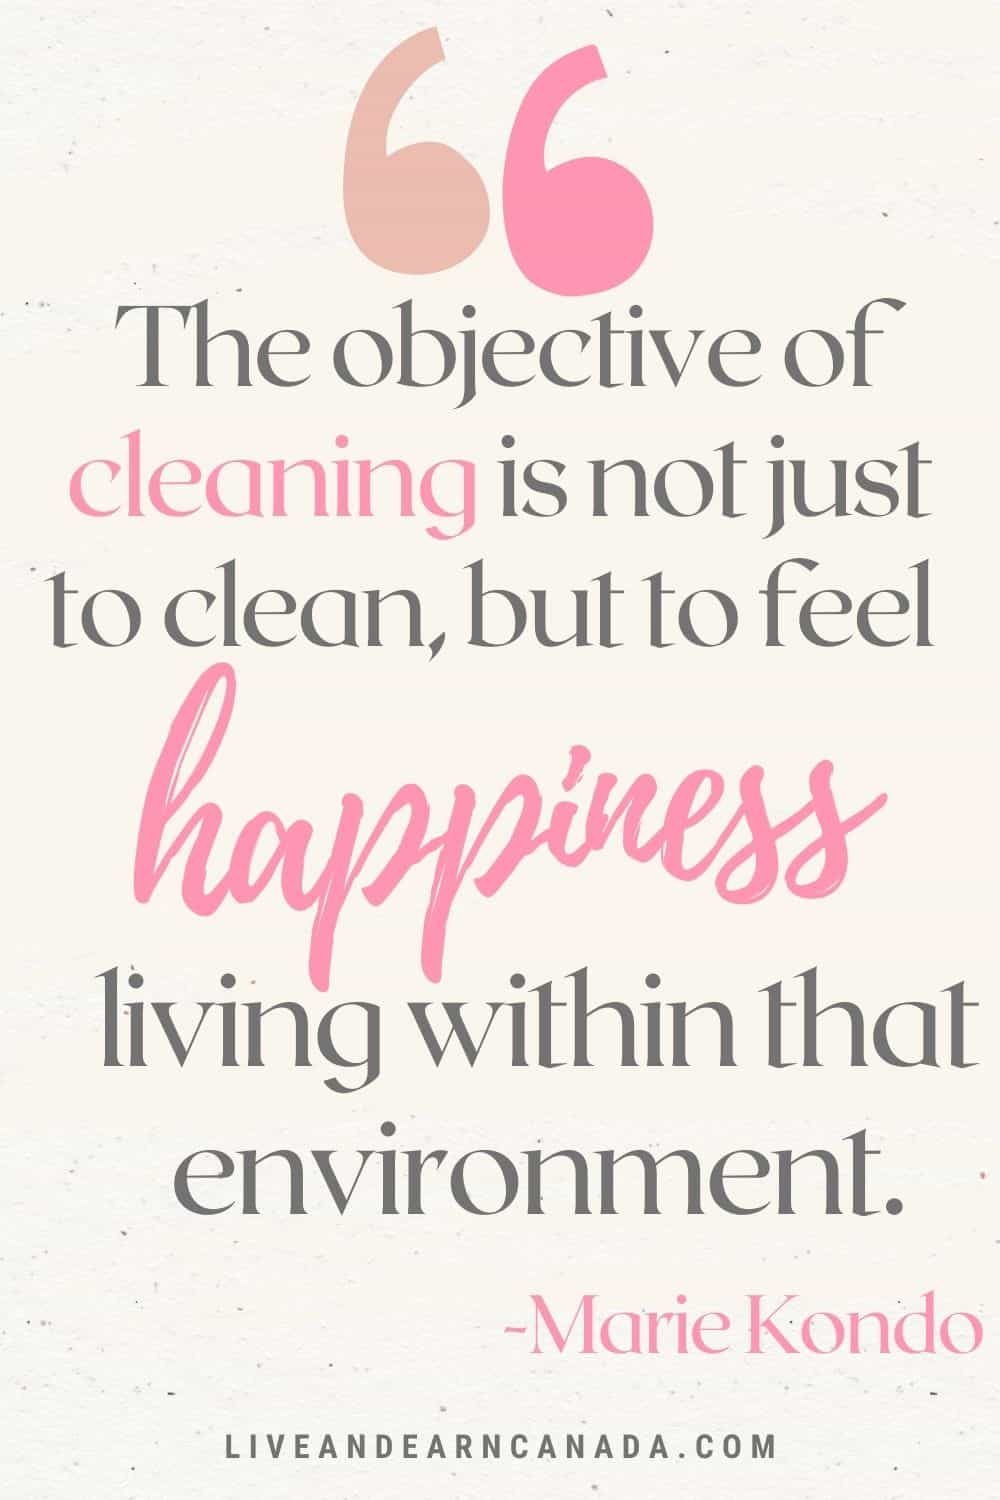 The Ultimate Guide to Decluttering Your Heart & Mind - Live and Earn Canada. {Spring Cleaning} Motivation. Spring cleaning quotes. Spring cleaning for the soul / inspiring quotes and sayings! Clutter Quotes to Inspire You to Downsize and Get Organized!